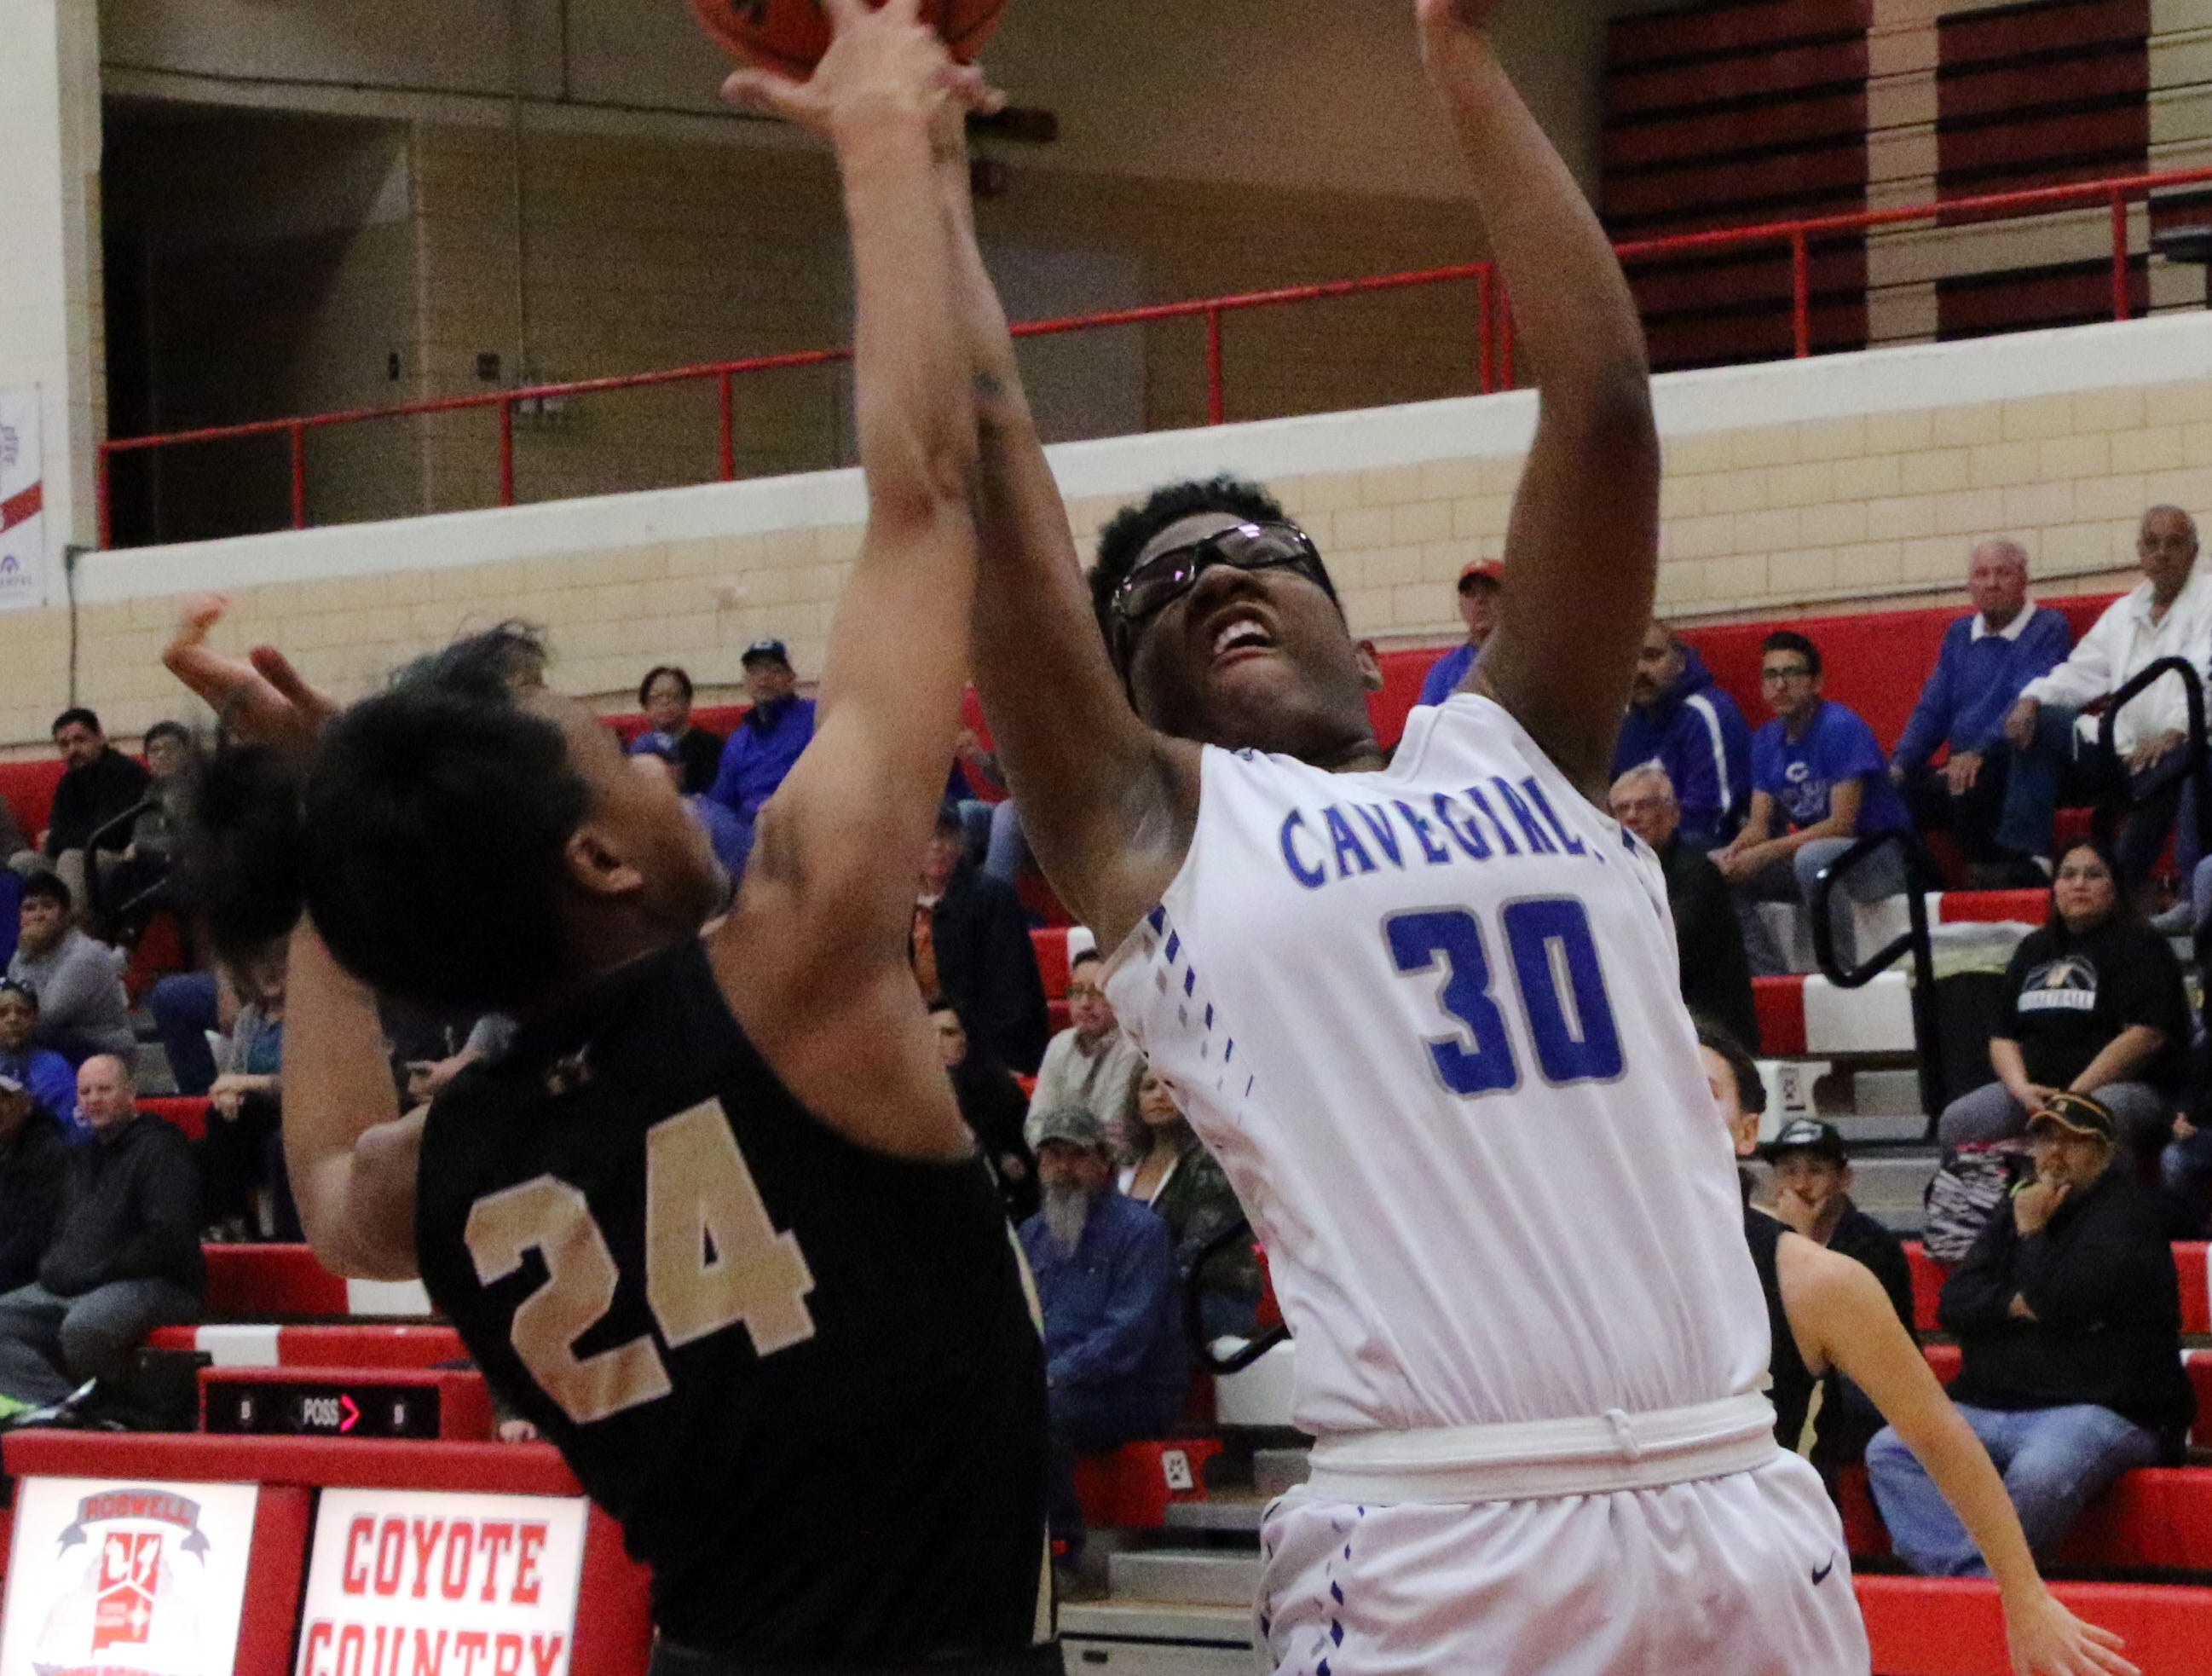 Dayshaun Moore is fouled while taking a contested shot during Monday's one-game playoff to determine the No. 1 team in Class 4-5A.